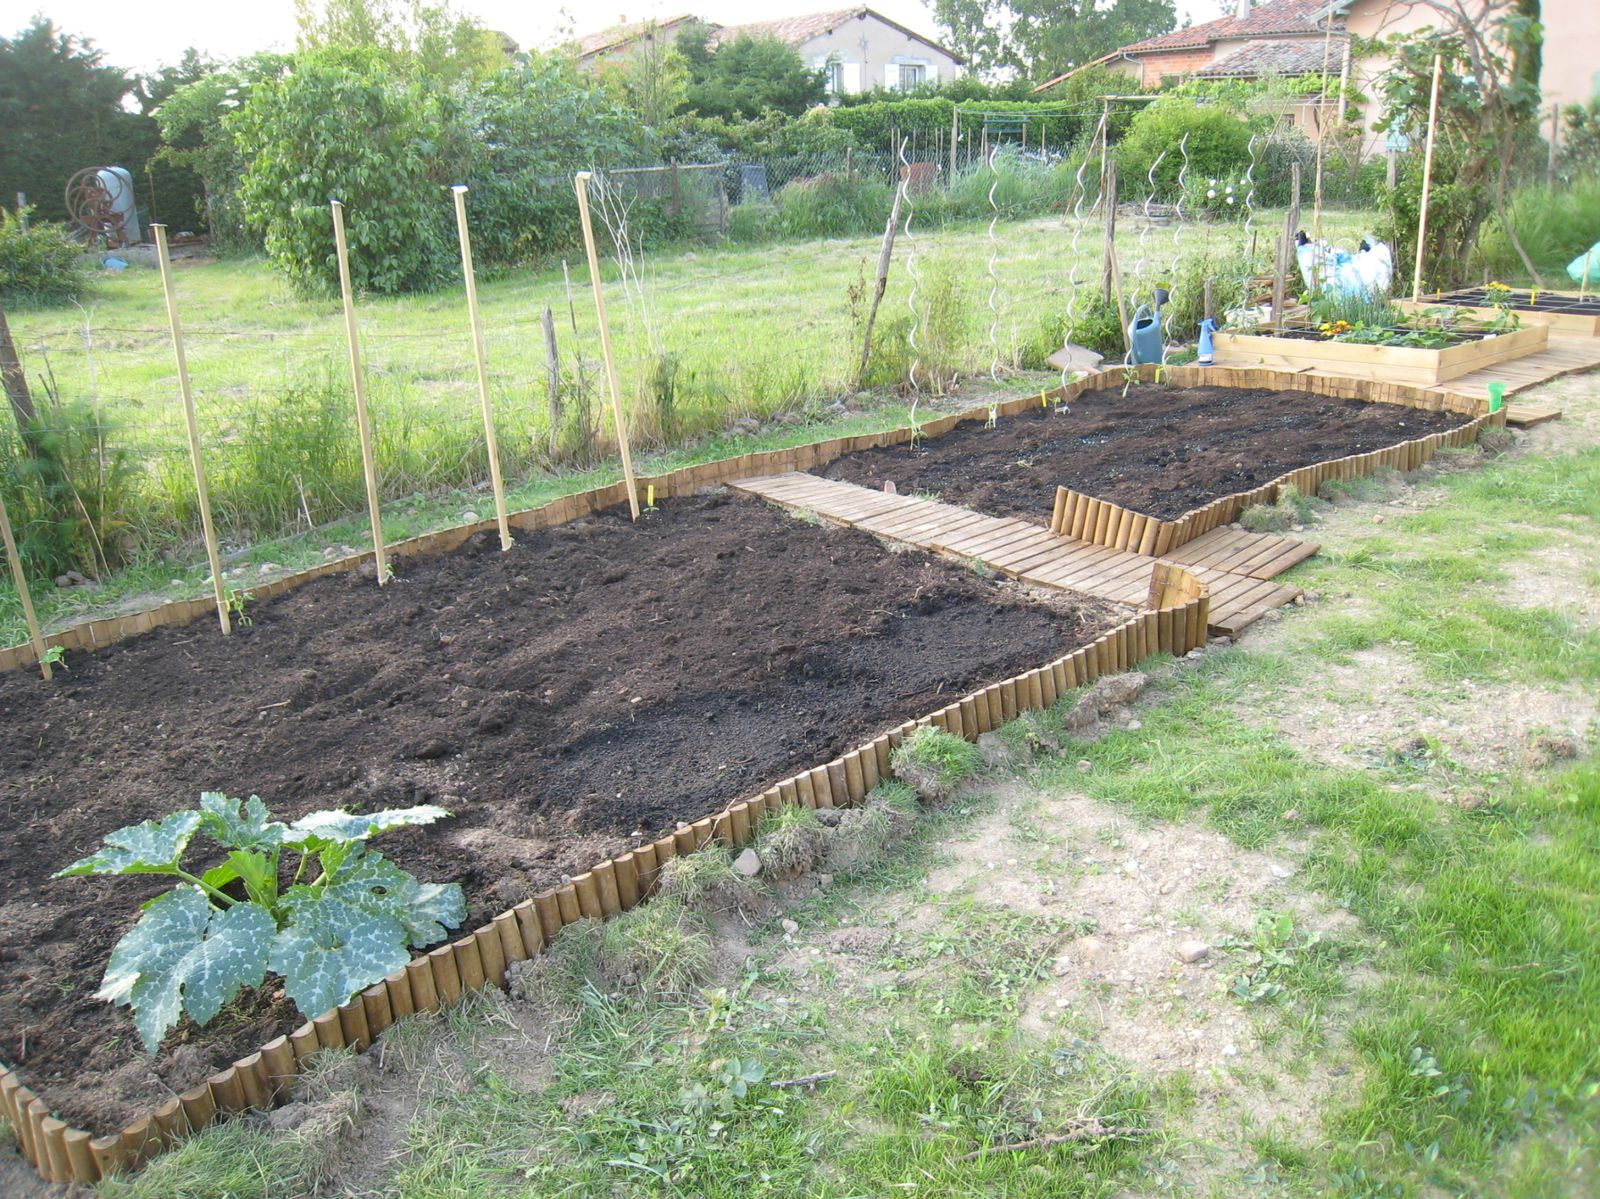 Am nagement du jardin potager le blog de nathalie for Amenagement jardin potager